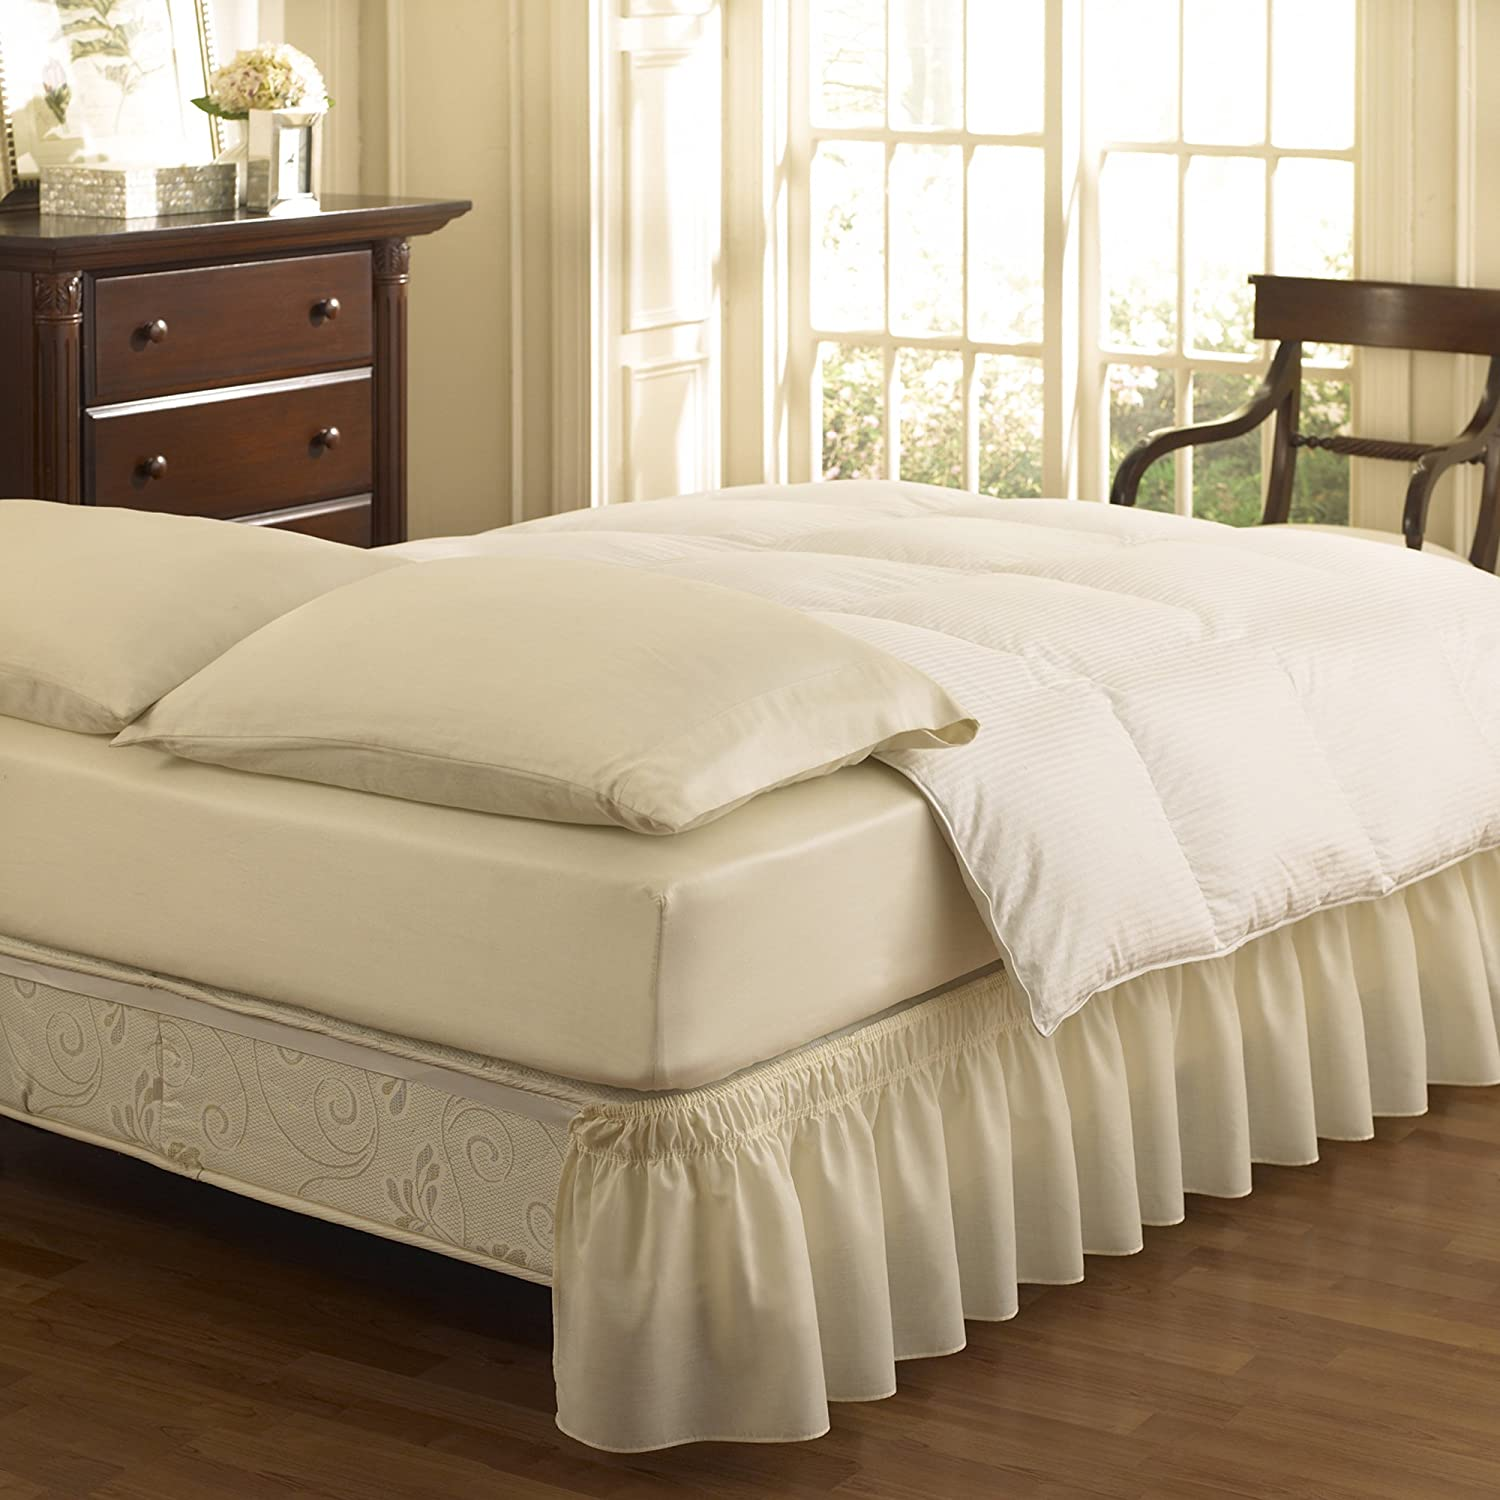 Easy Fit Wrap Around Solid Ruffled Bed Skirt, Queen/King, Camel Ellery Homestyles 11577BEDDQKGCML